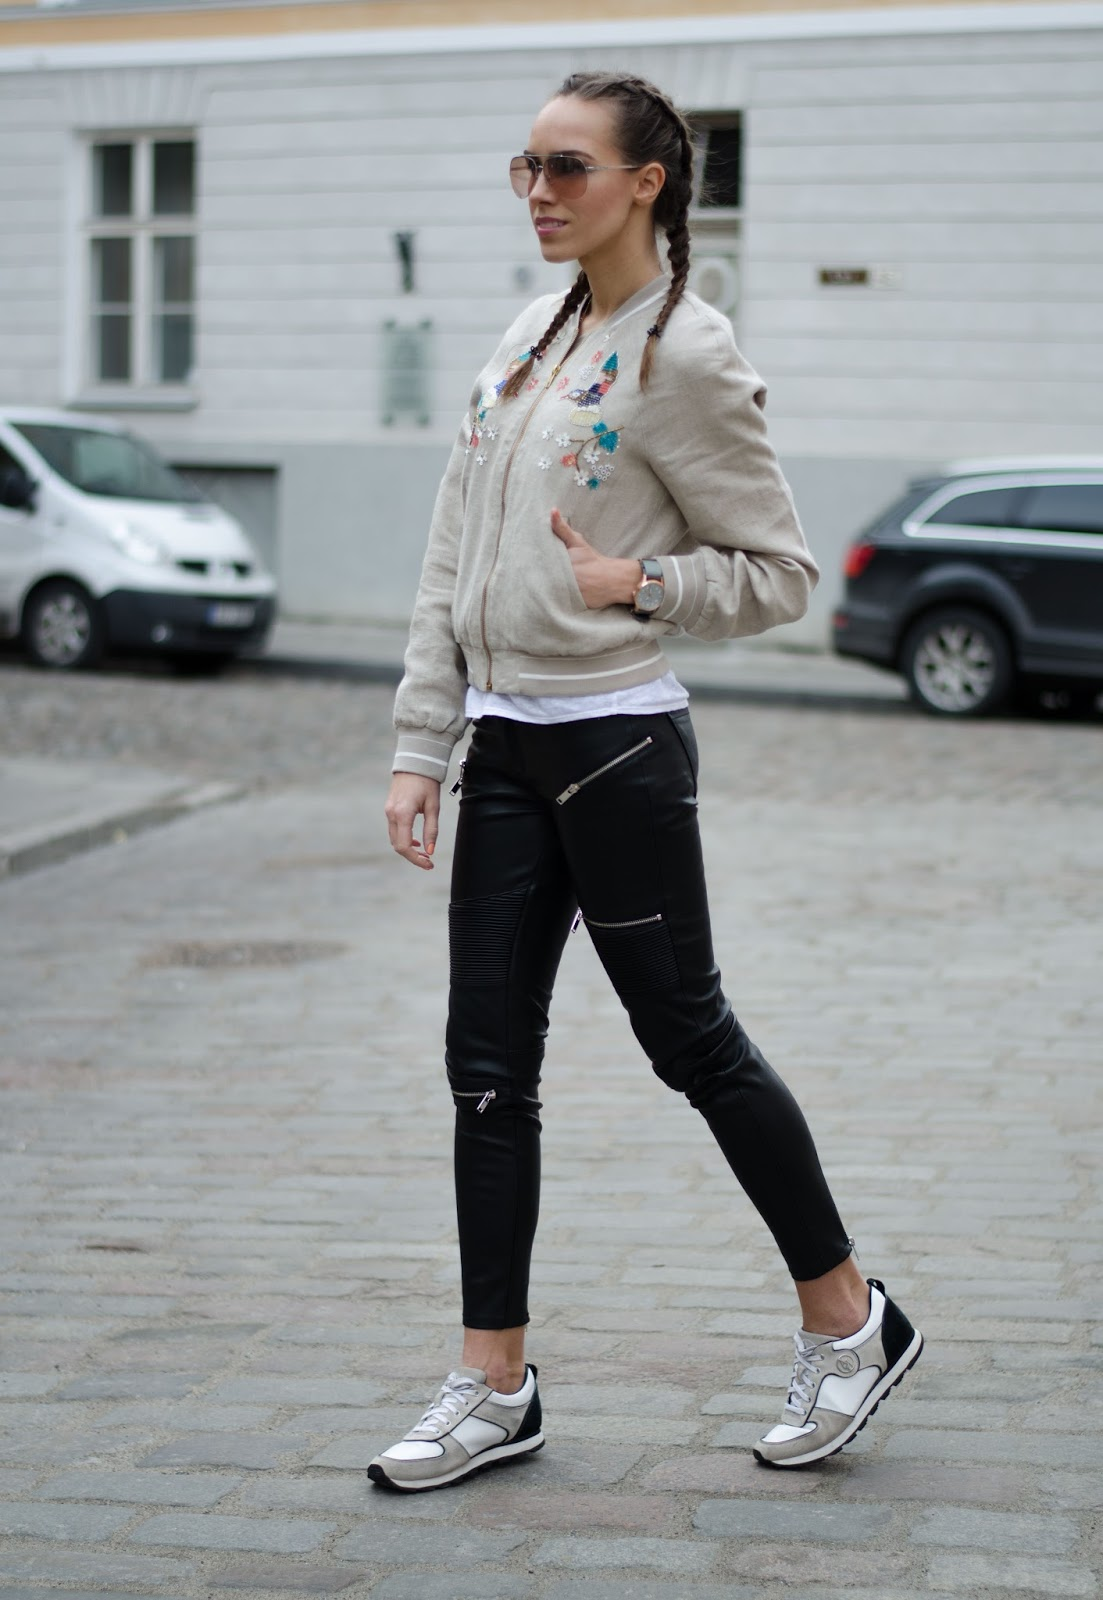 kristjaana mere embellished bomber jacket casual spring outfit